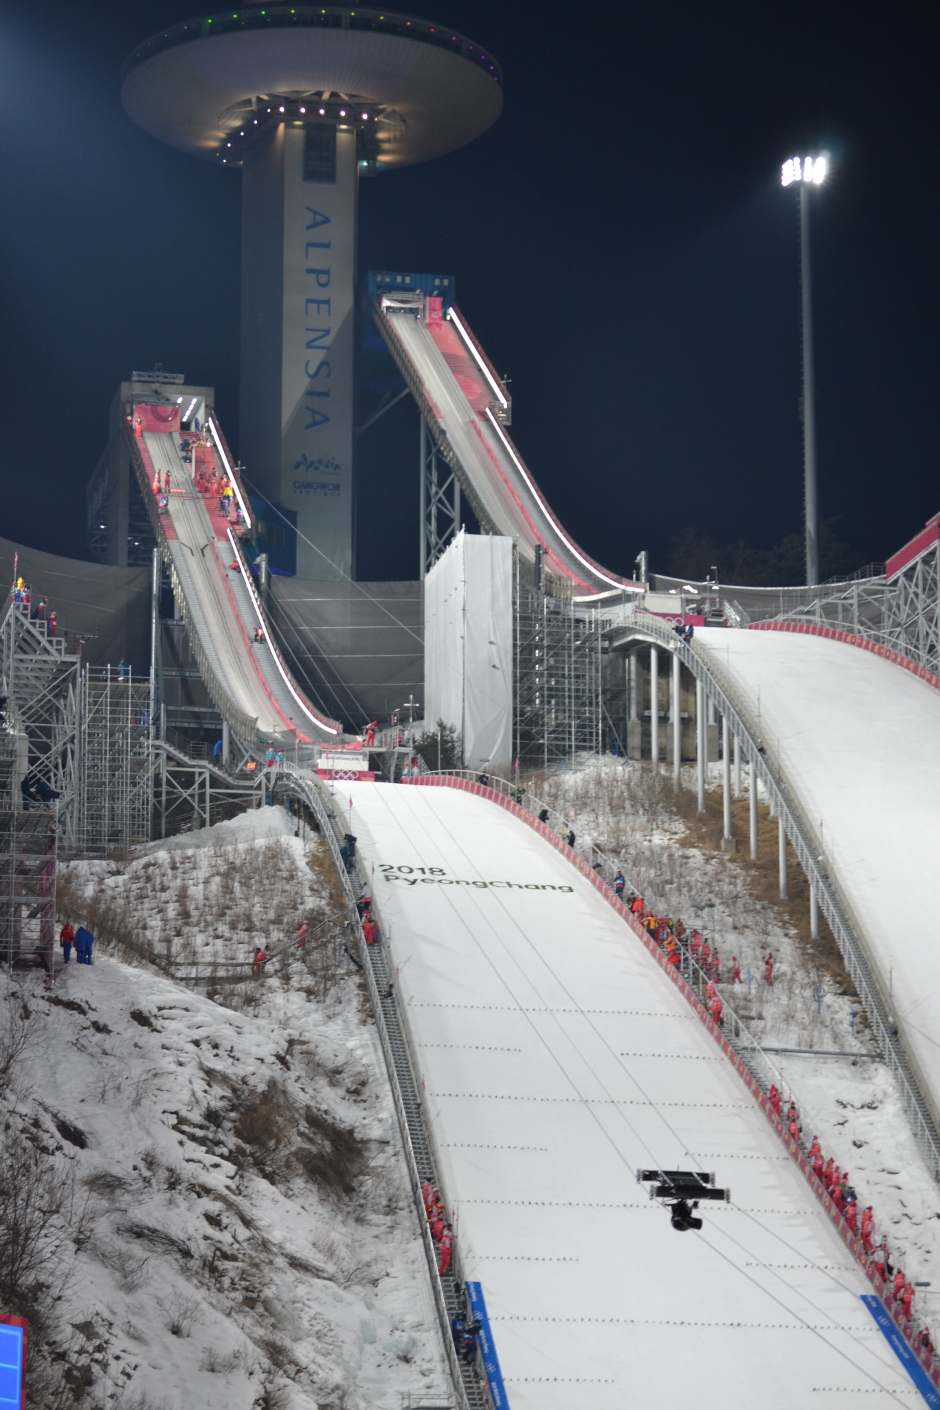 What is the most popular winter sport? Ski Jumping